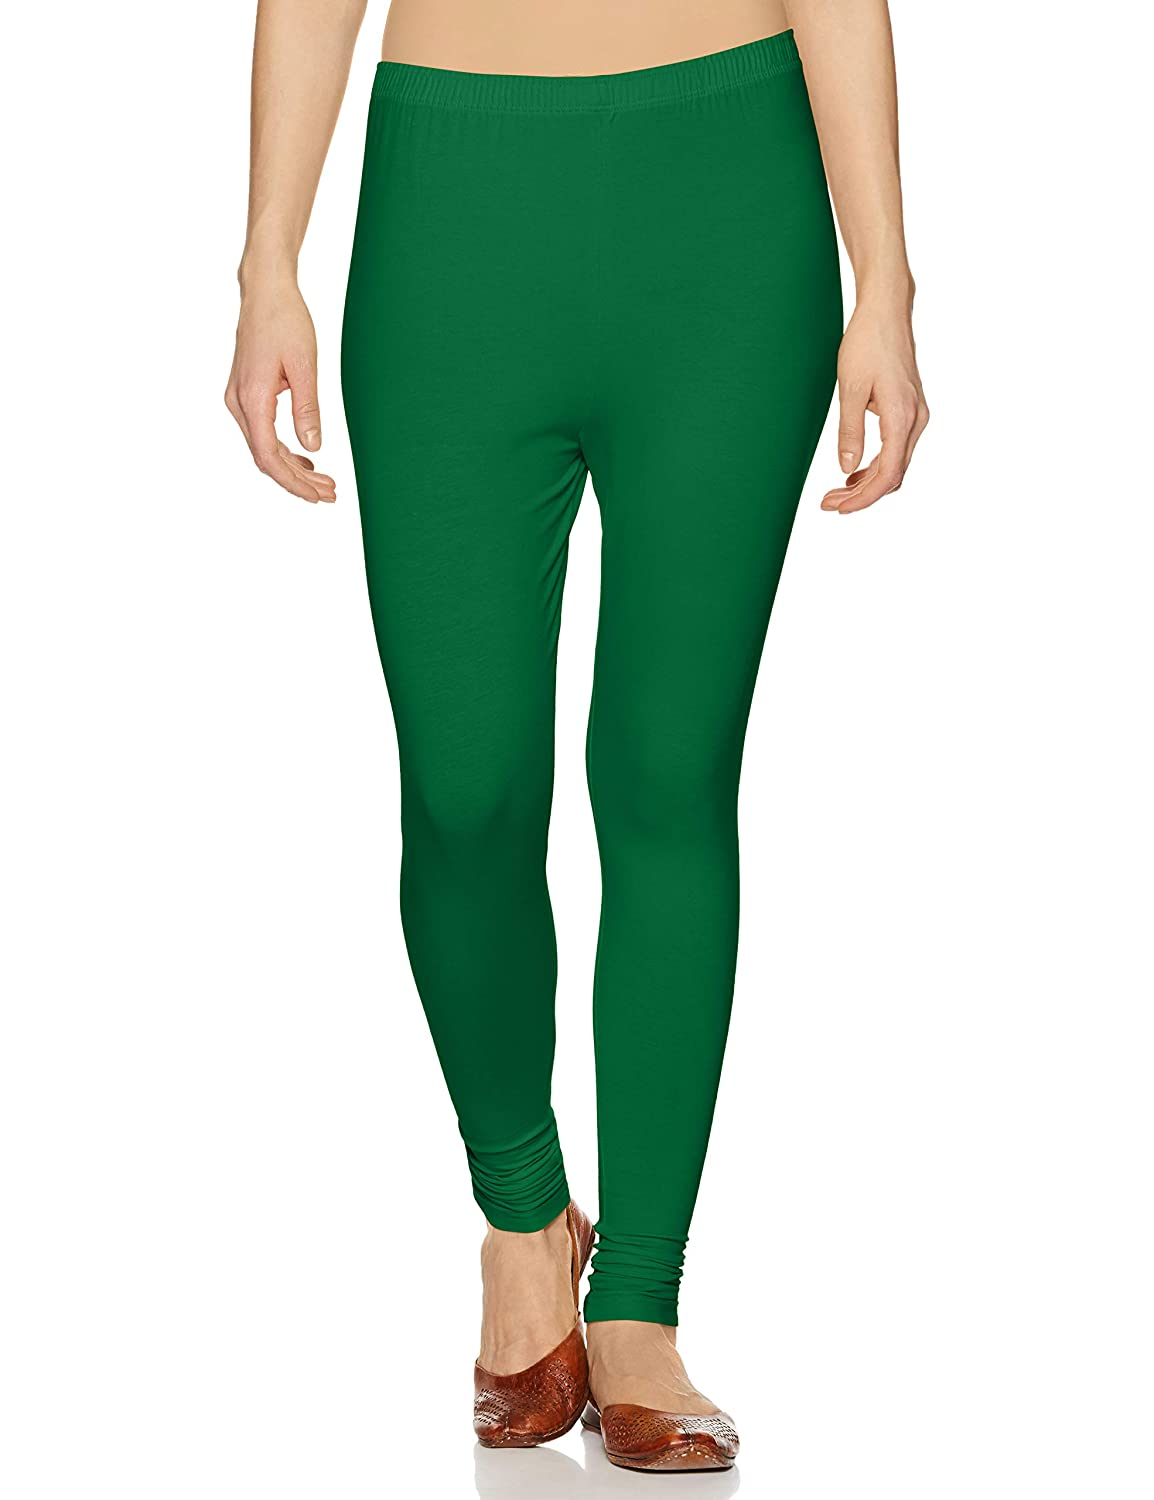 Lux Lyra Women's Leggings Ankle_92_FS_1PC_Forest Green_Free Size